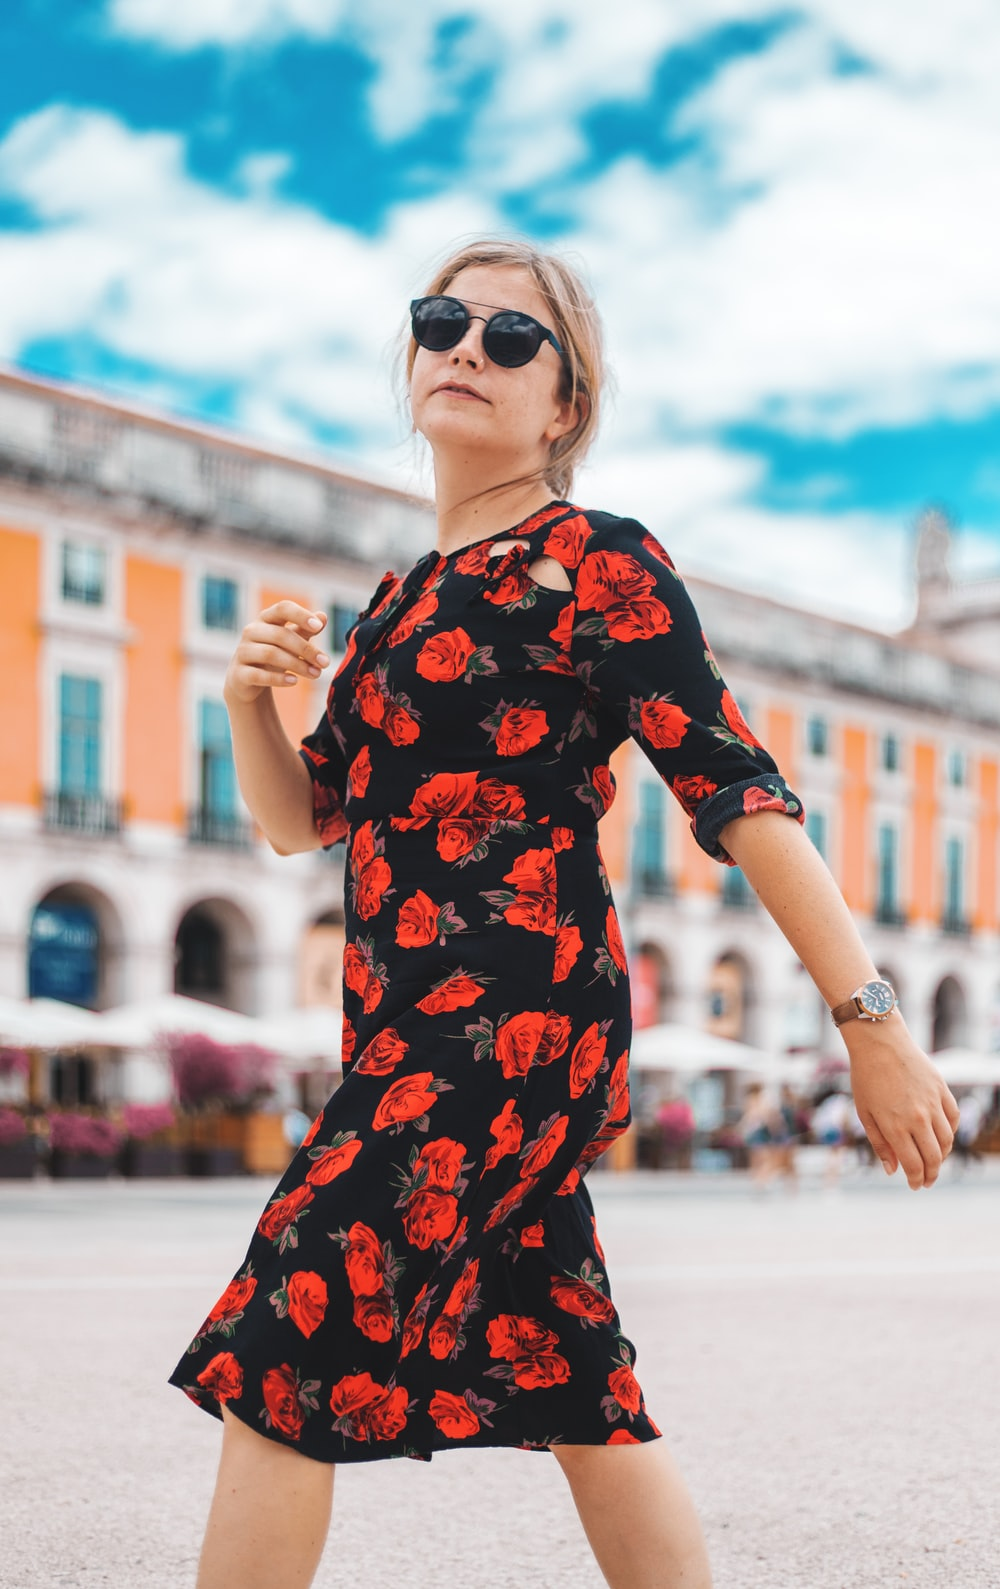 walking woman wearing red and white floral half-sleeved dress near the building during daytime